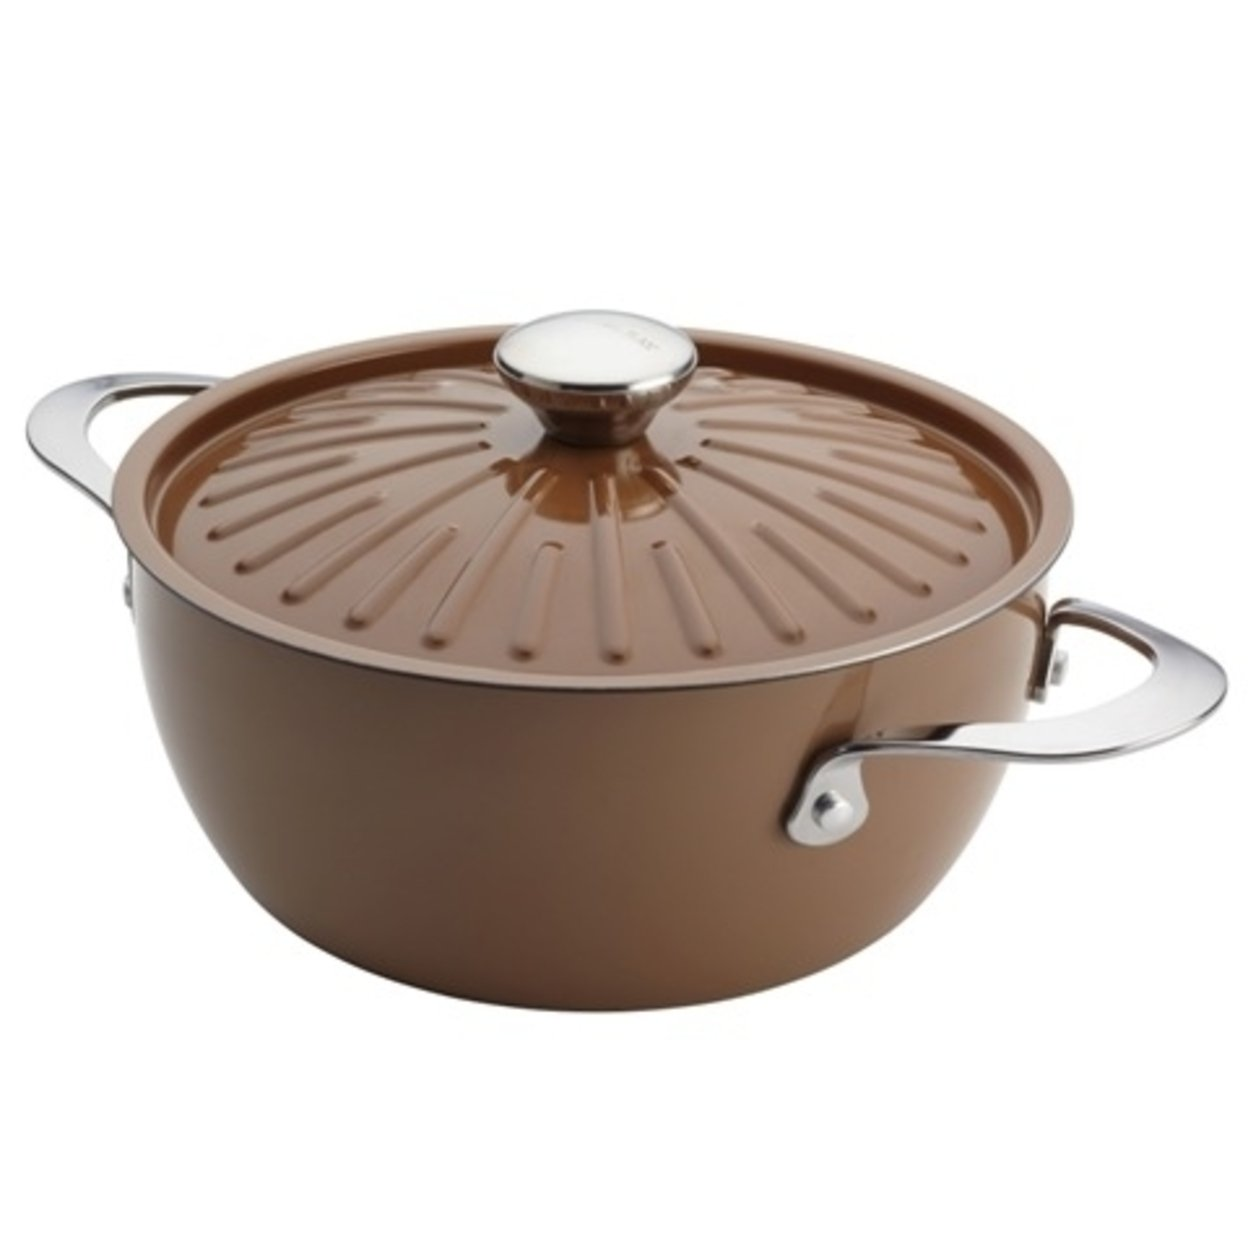 Rachael Ray 16289 Cucina Oven-To-Table Hard Enamel Nonstick 4.5-Quart Covered Round Casserole Mushroom Brown 5a3c4ea42a00e457775ee511